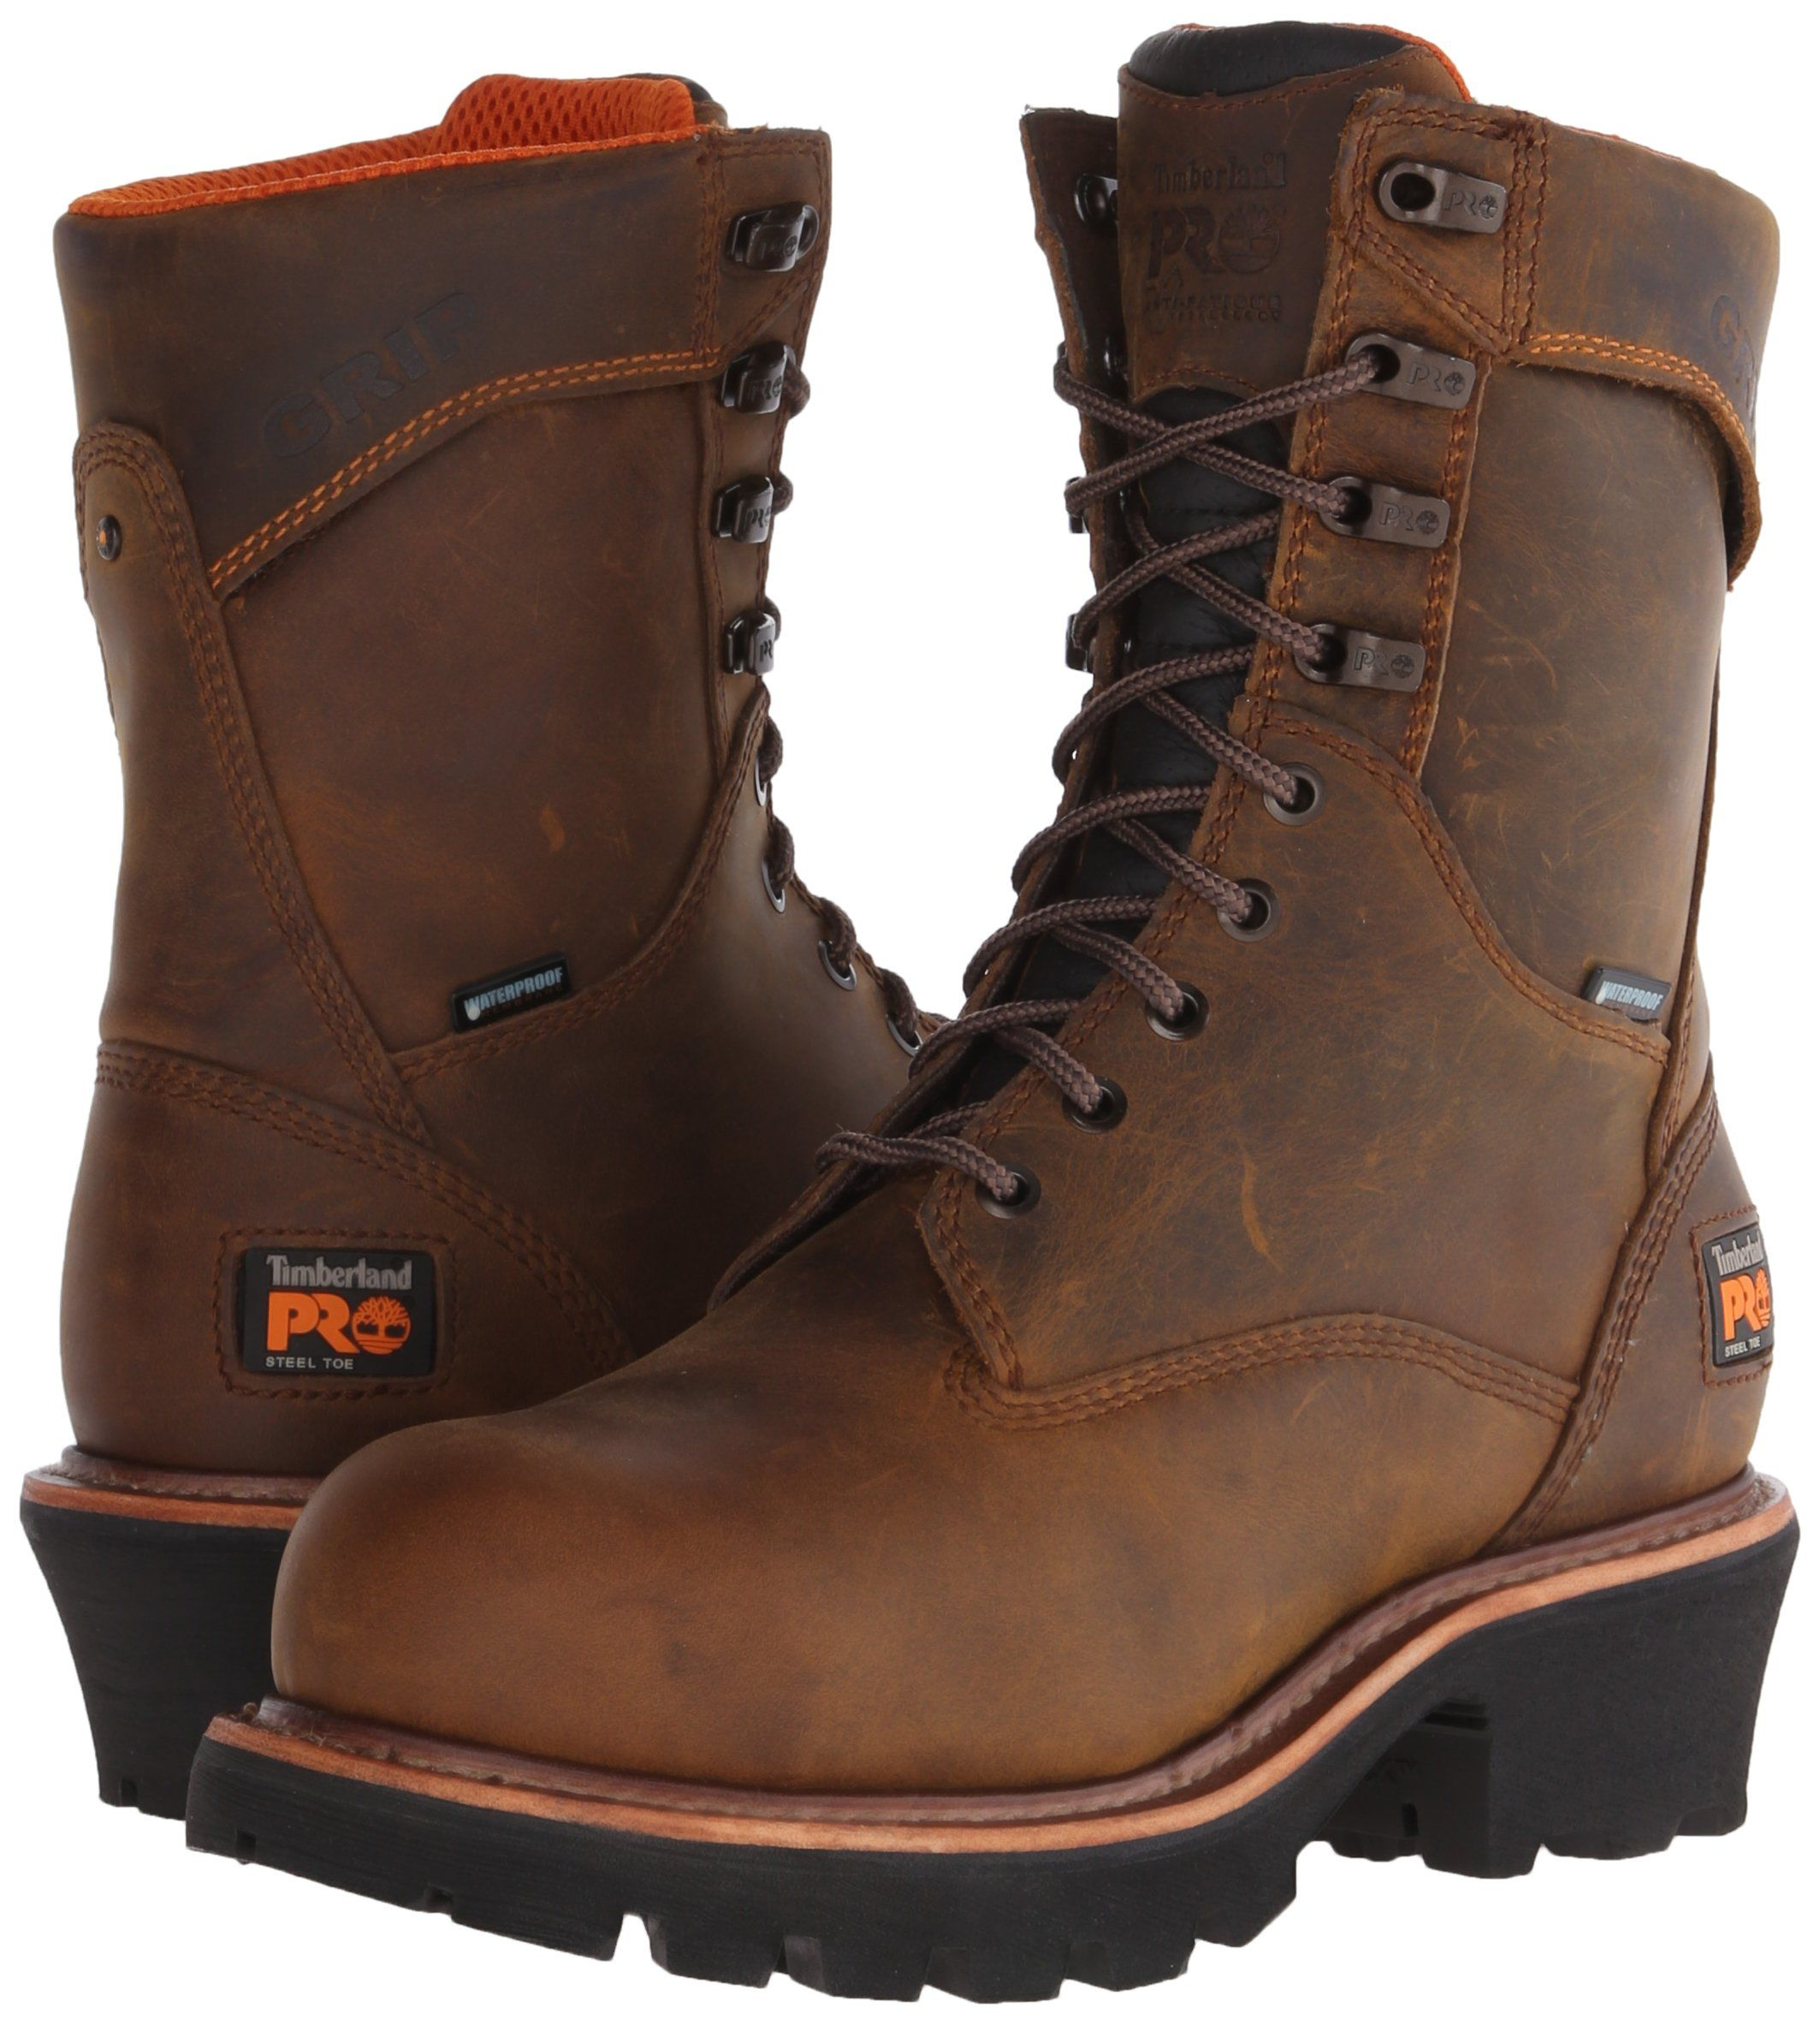 dd681b3fe24d Timberland PRO Mens 9 Inch Rip Saw Logger Steel Toe Waterproof Work and  Hunt Boot Brown Distressed Leather 10 W US    Details can be found by  clicking on ...